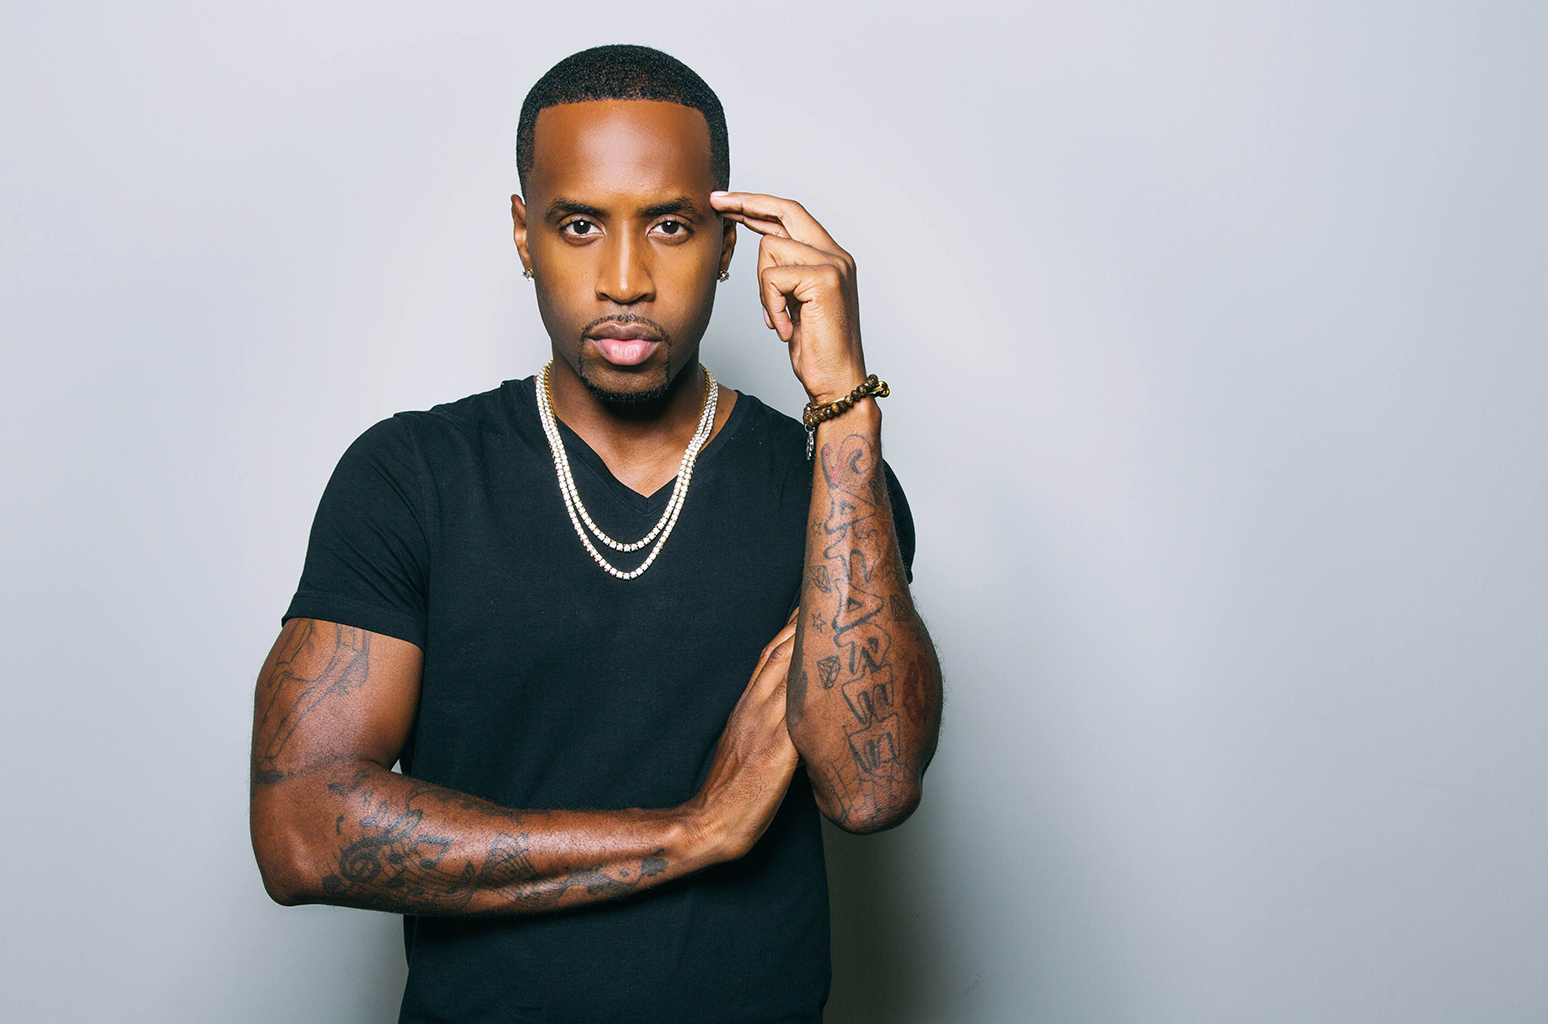 Safaree Creates An OnlyFans Page And People Accuse Him Of Pulling A Blac Chyna